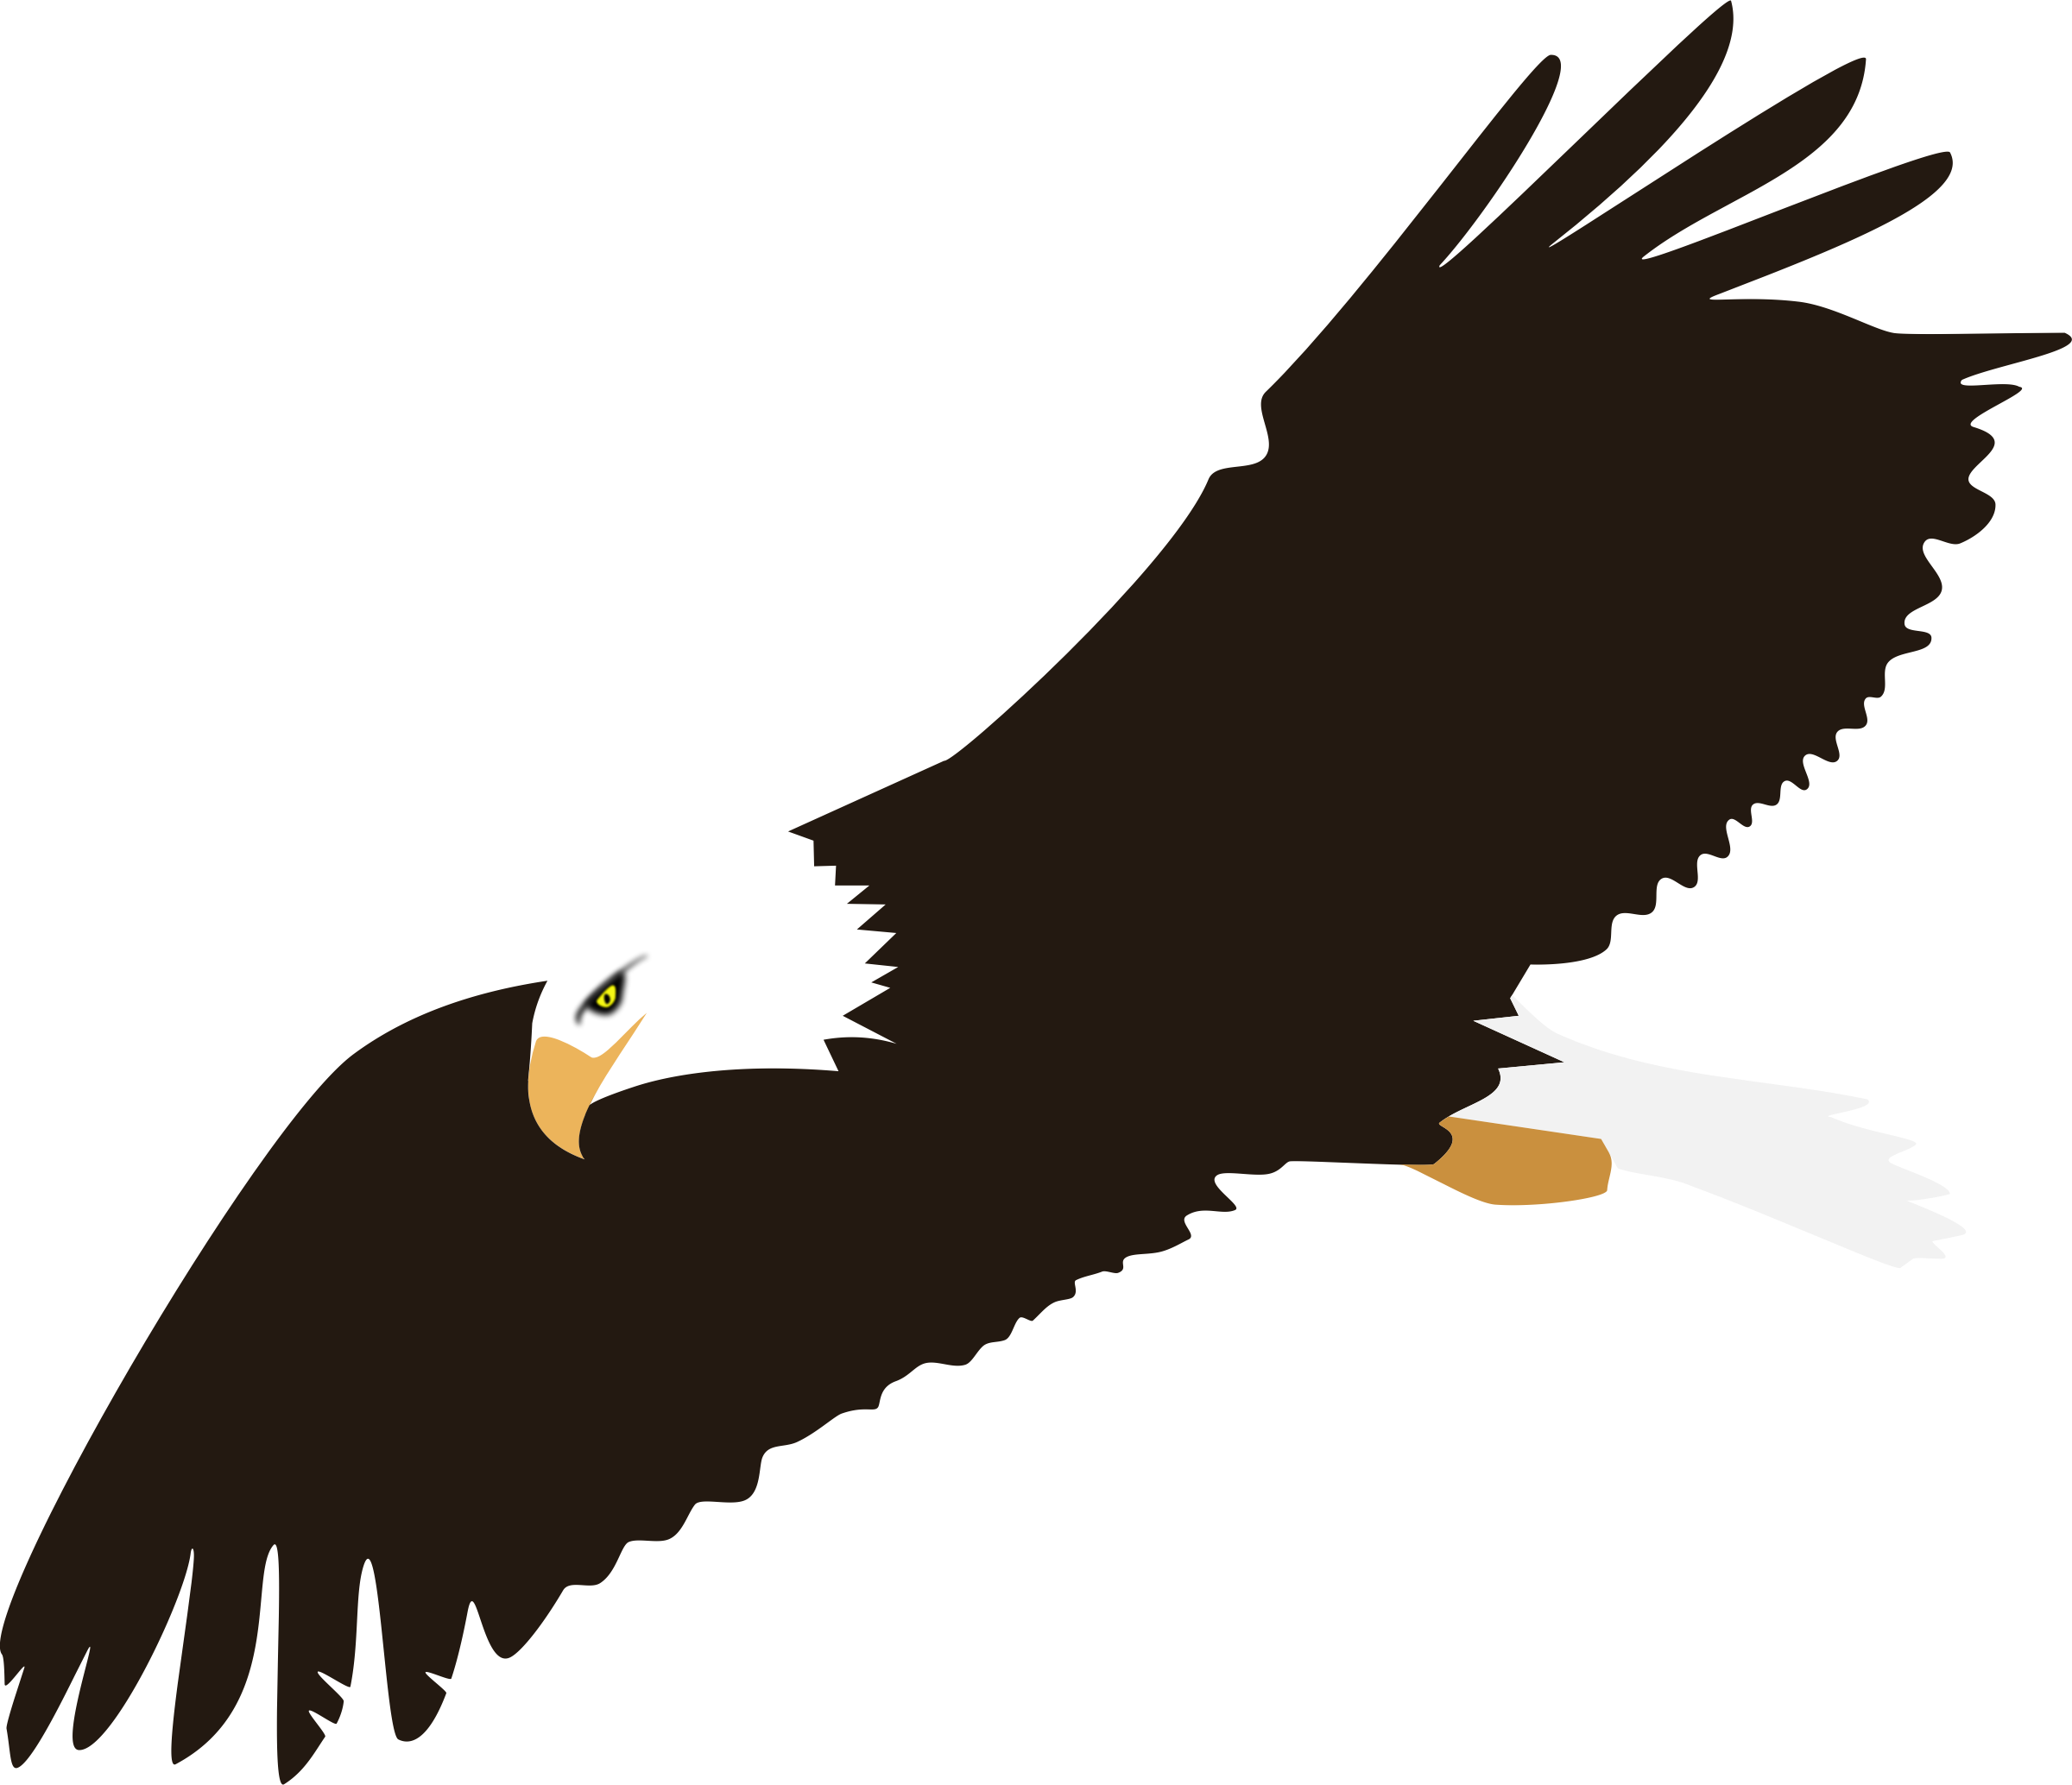 soaring eagle silhouette at getdrawings com free for personal use rh getdrawings com flying eagle clipart png flying eagle wings clipart